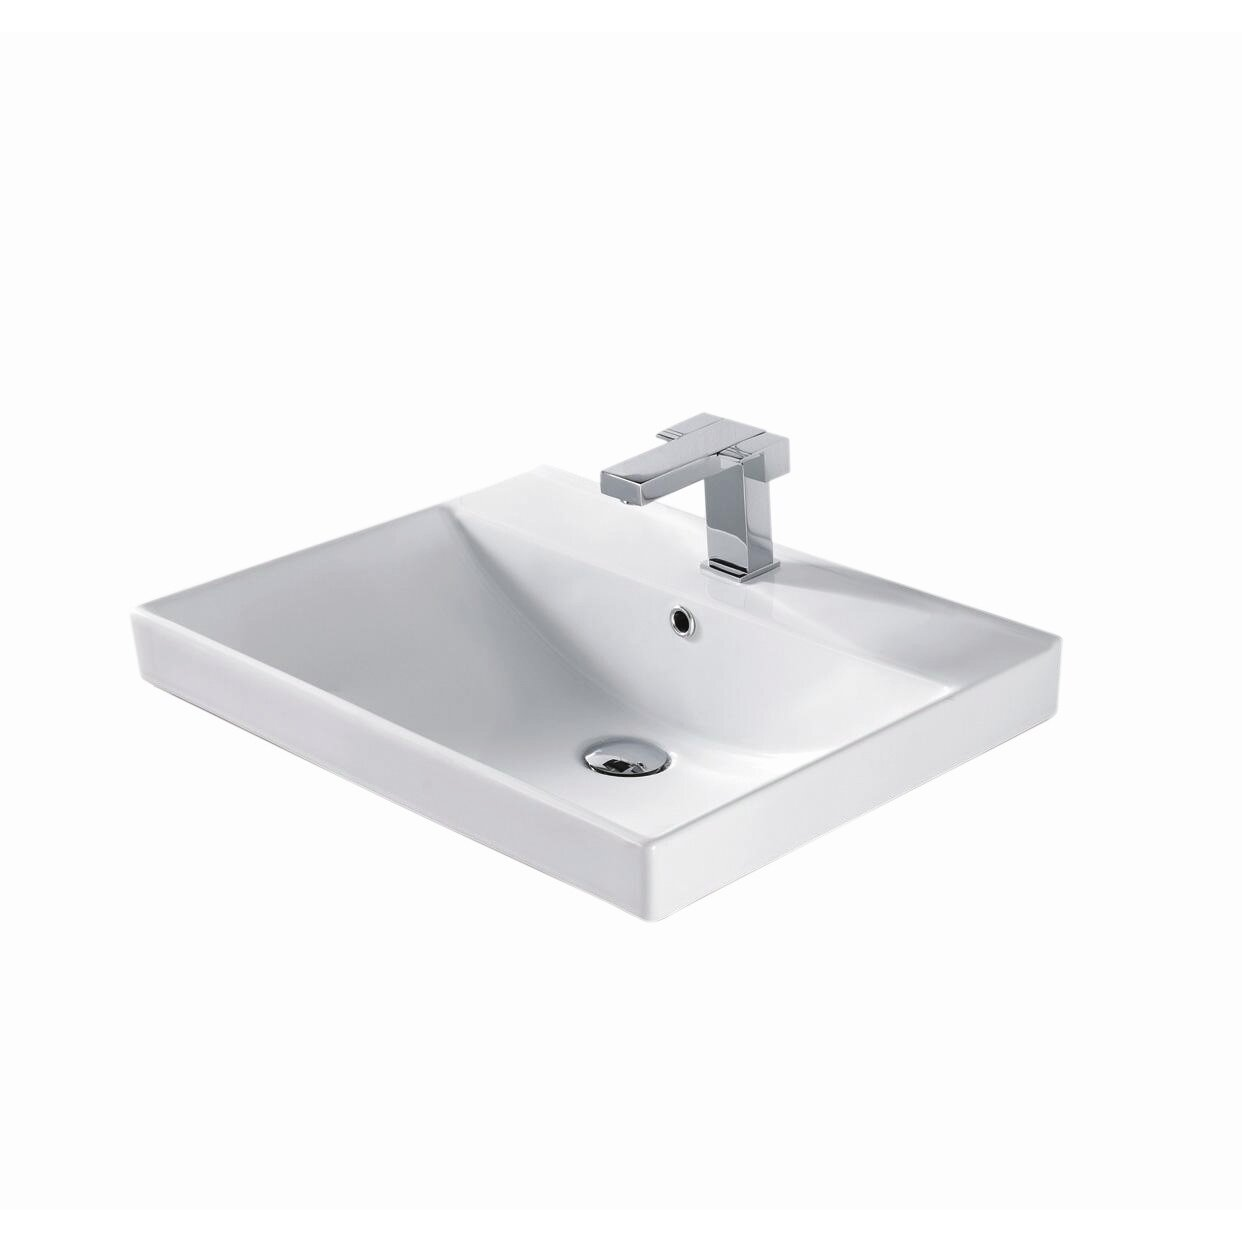 Rectangular Bathroom Sinks Madeli 24 Rectangular Bathroom Sink Reviews Wayfair